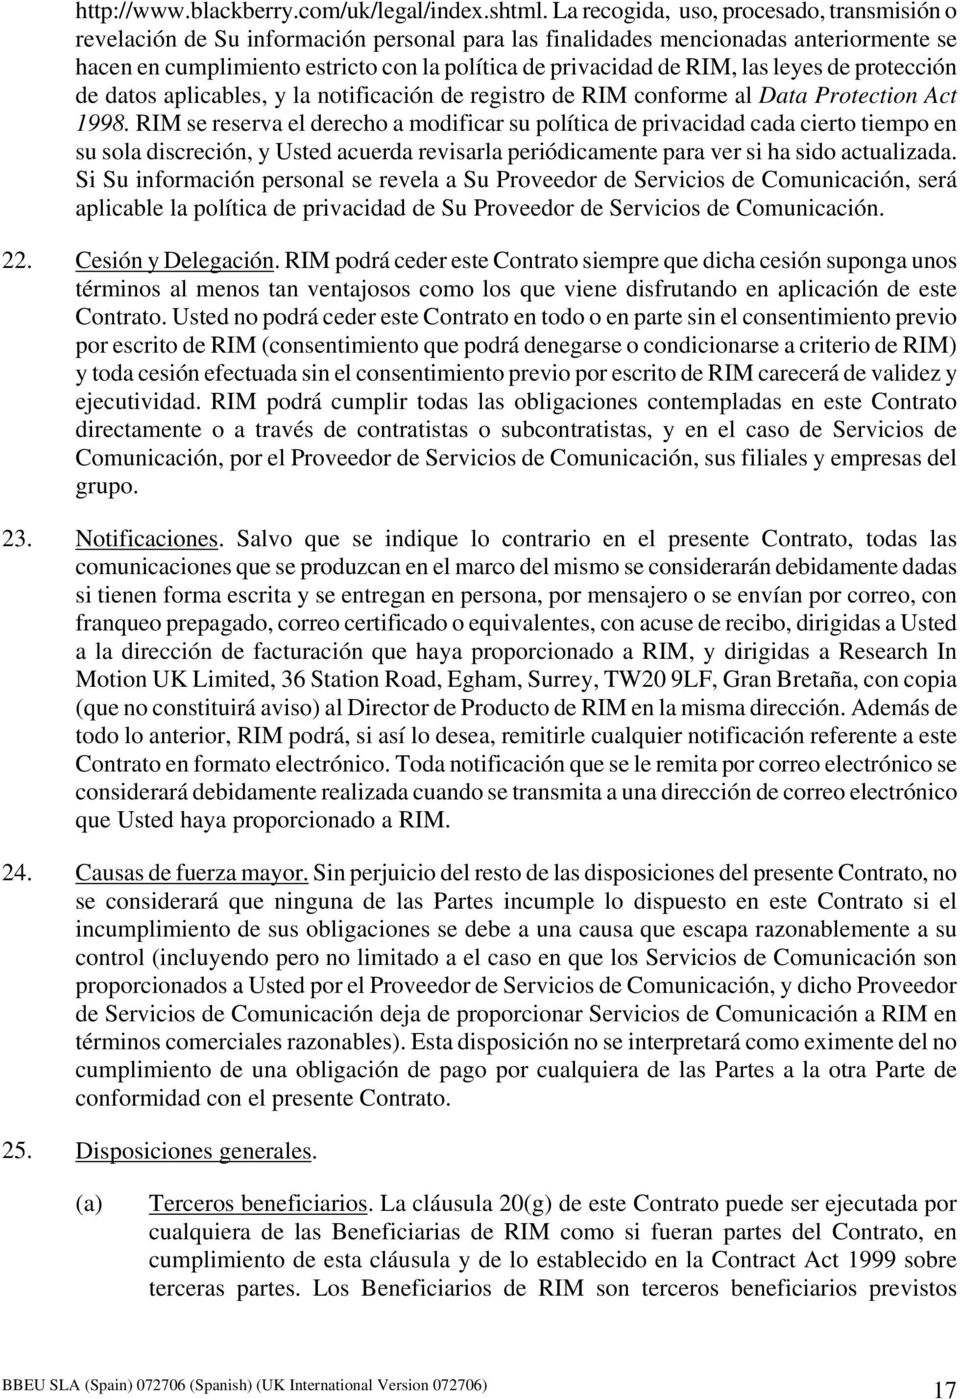 las leyes de protección de datos aplicables, y la notificación de registro de RIM conforme al Data Protection Act 1998.